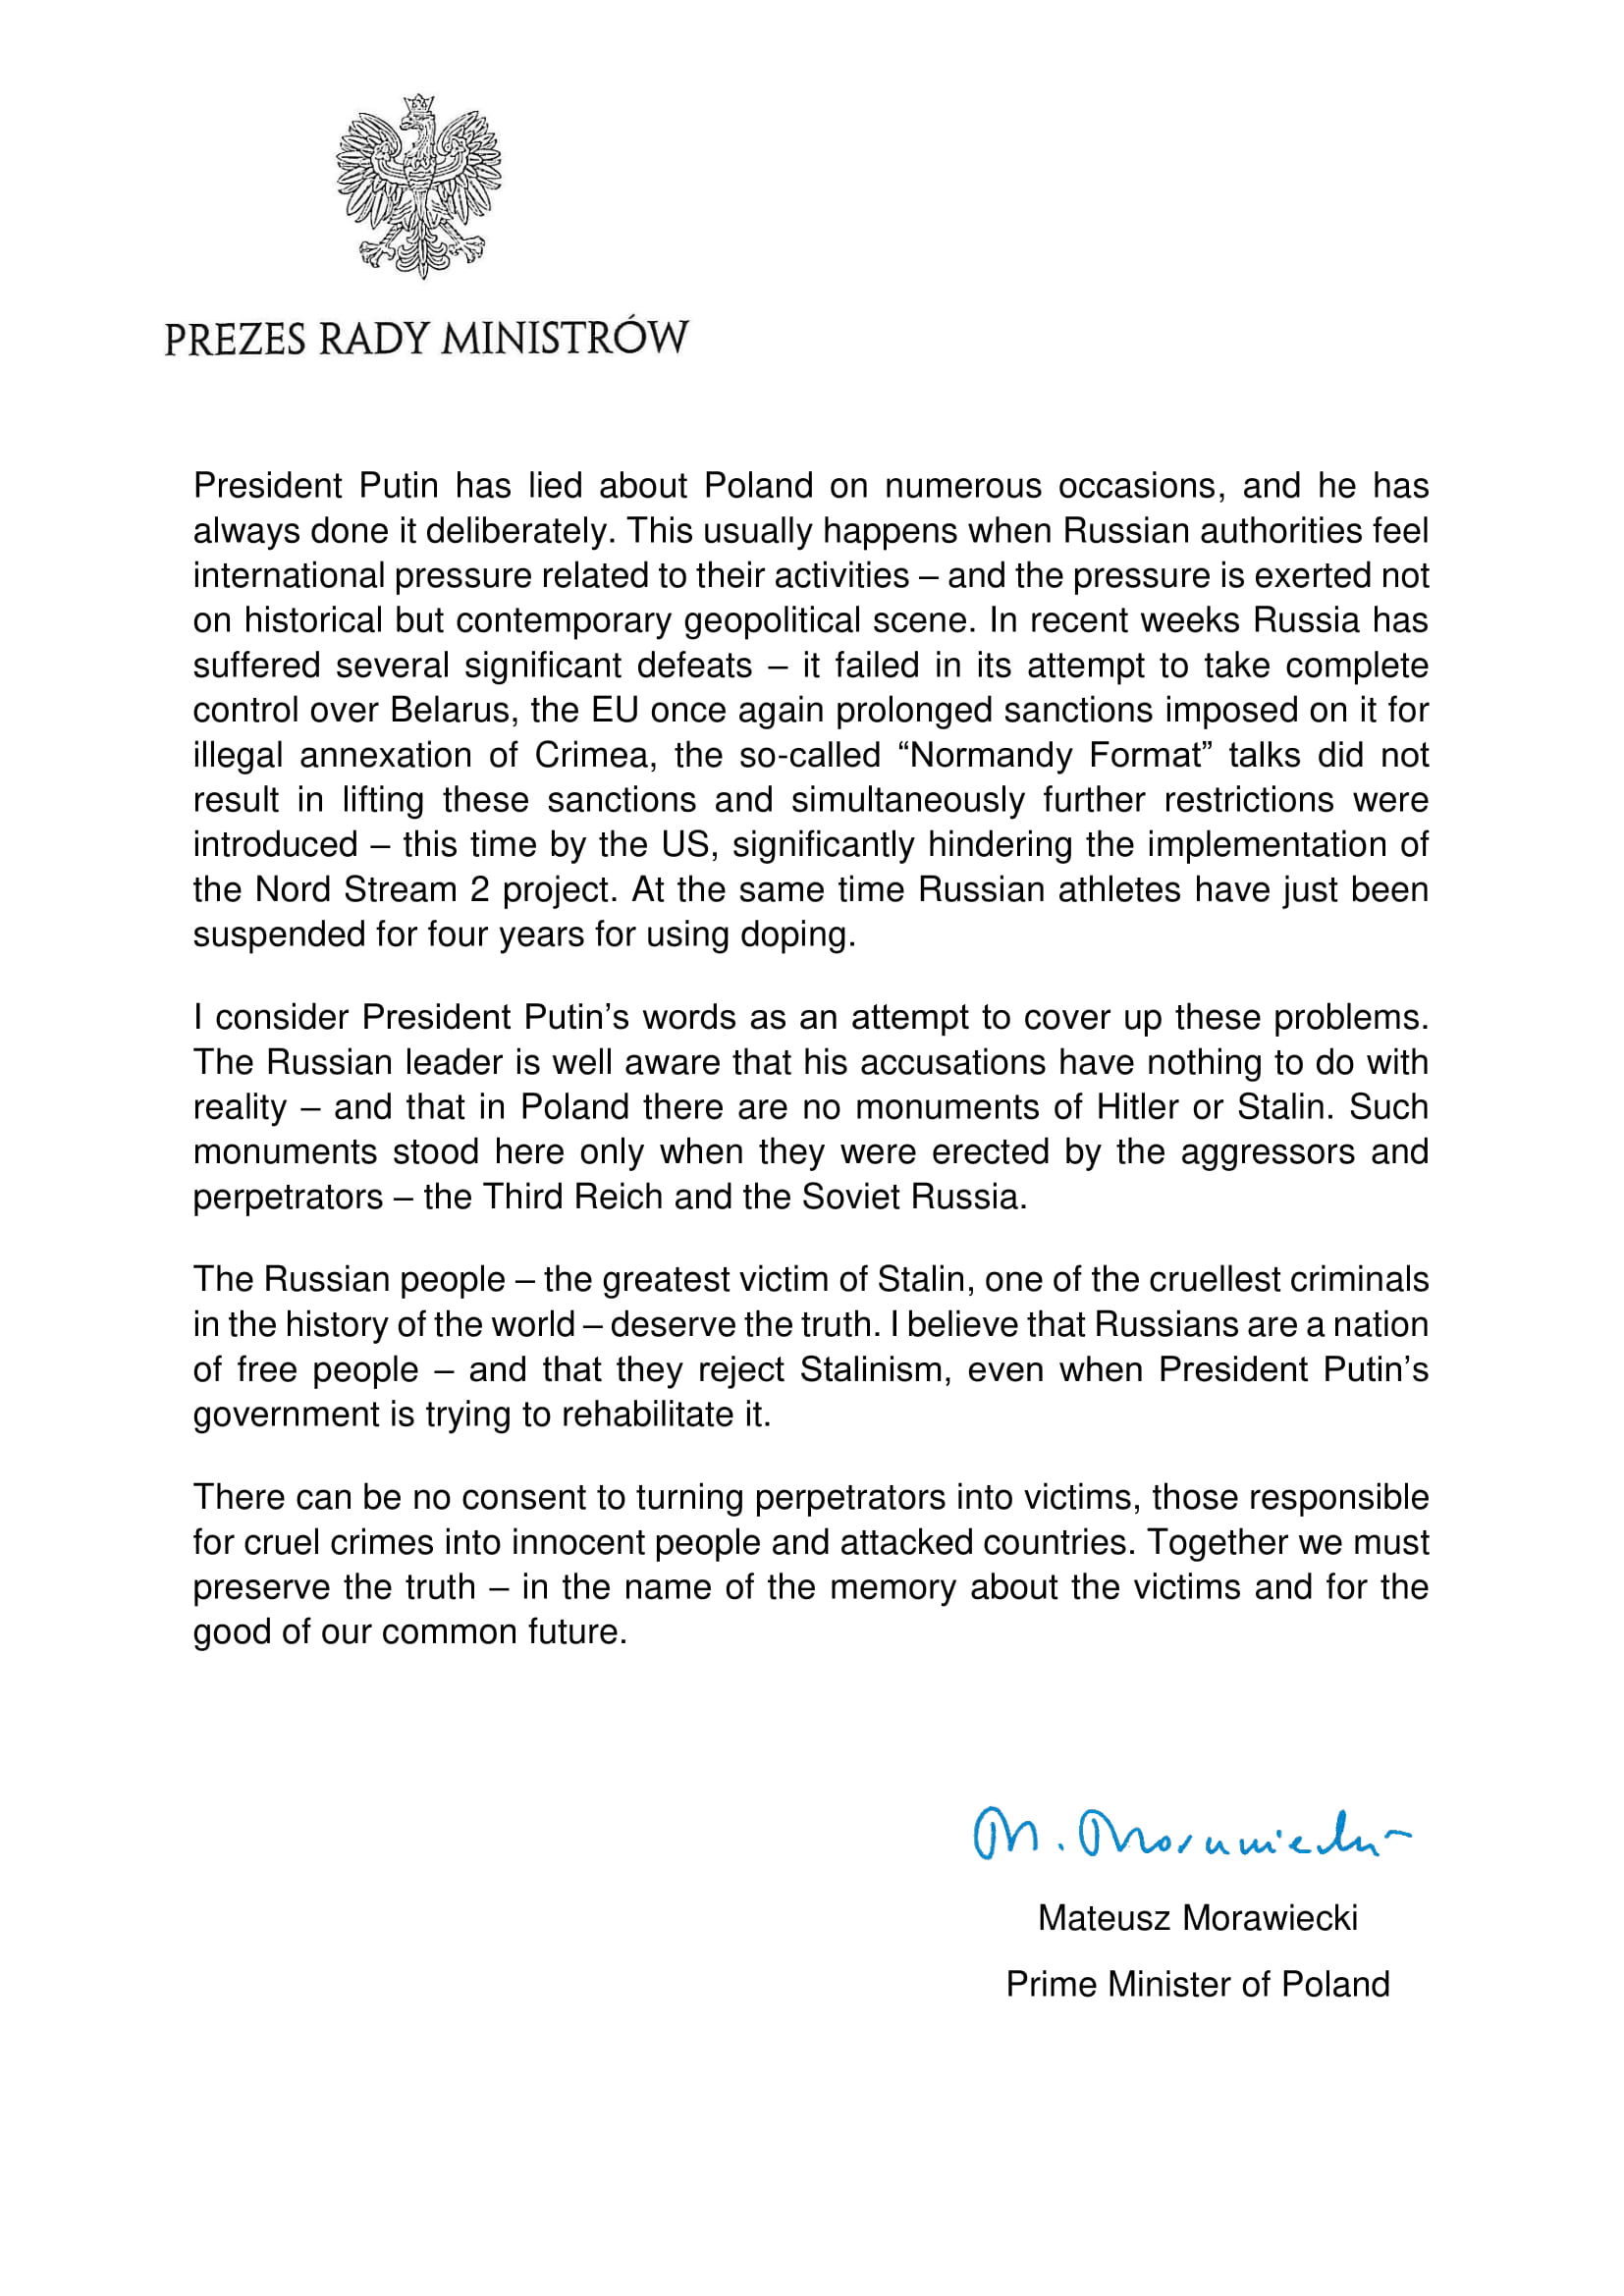 20191229-Statement by the Prime Minister of Poland Mateusz Morawiecki-scr4